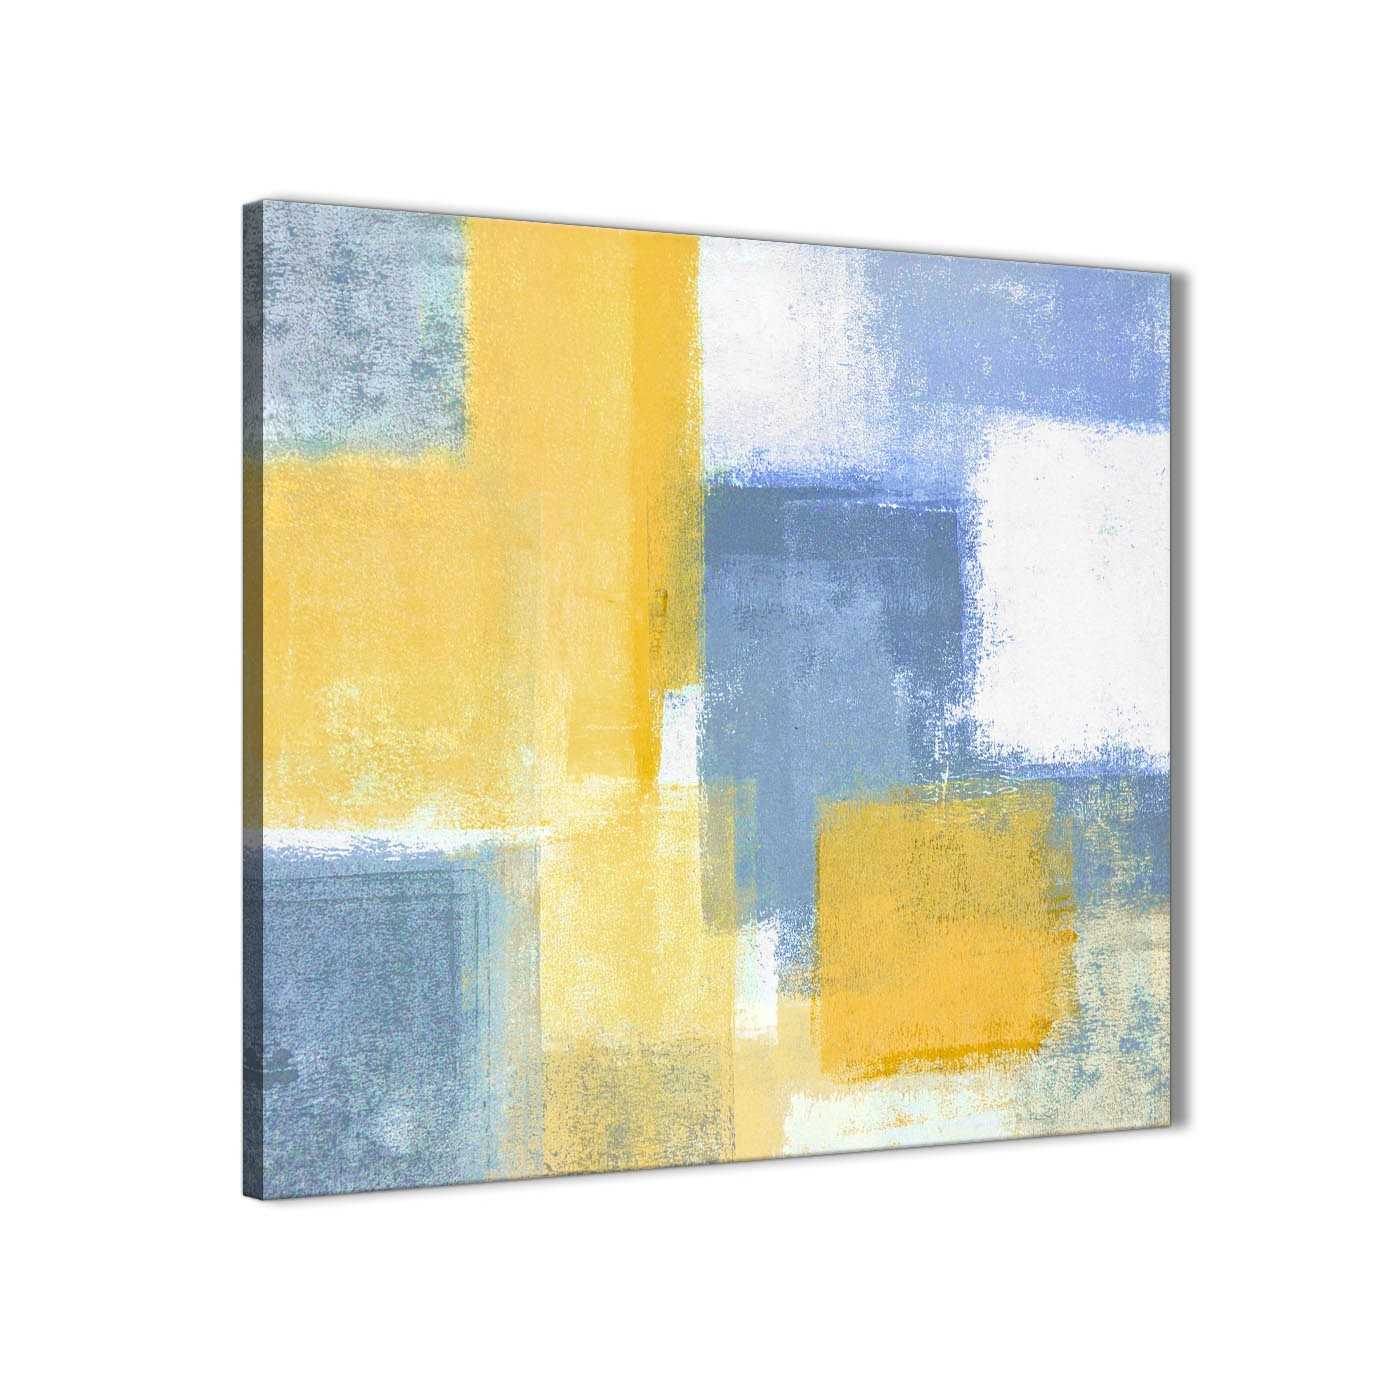 Cheap mustard yellow blue kitchen canvas pictures accessories abstract 1s371s 49cm square print display gallery item 1